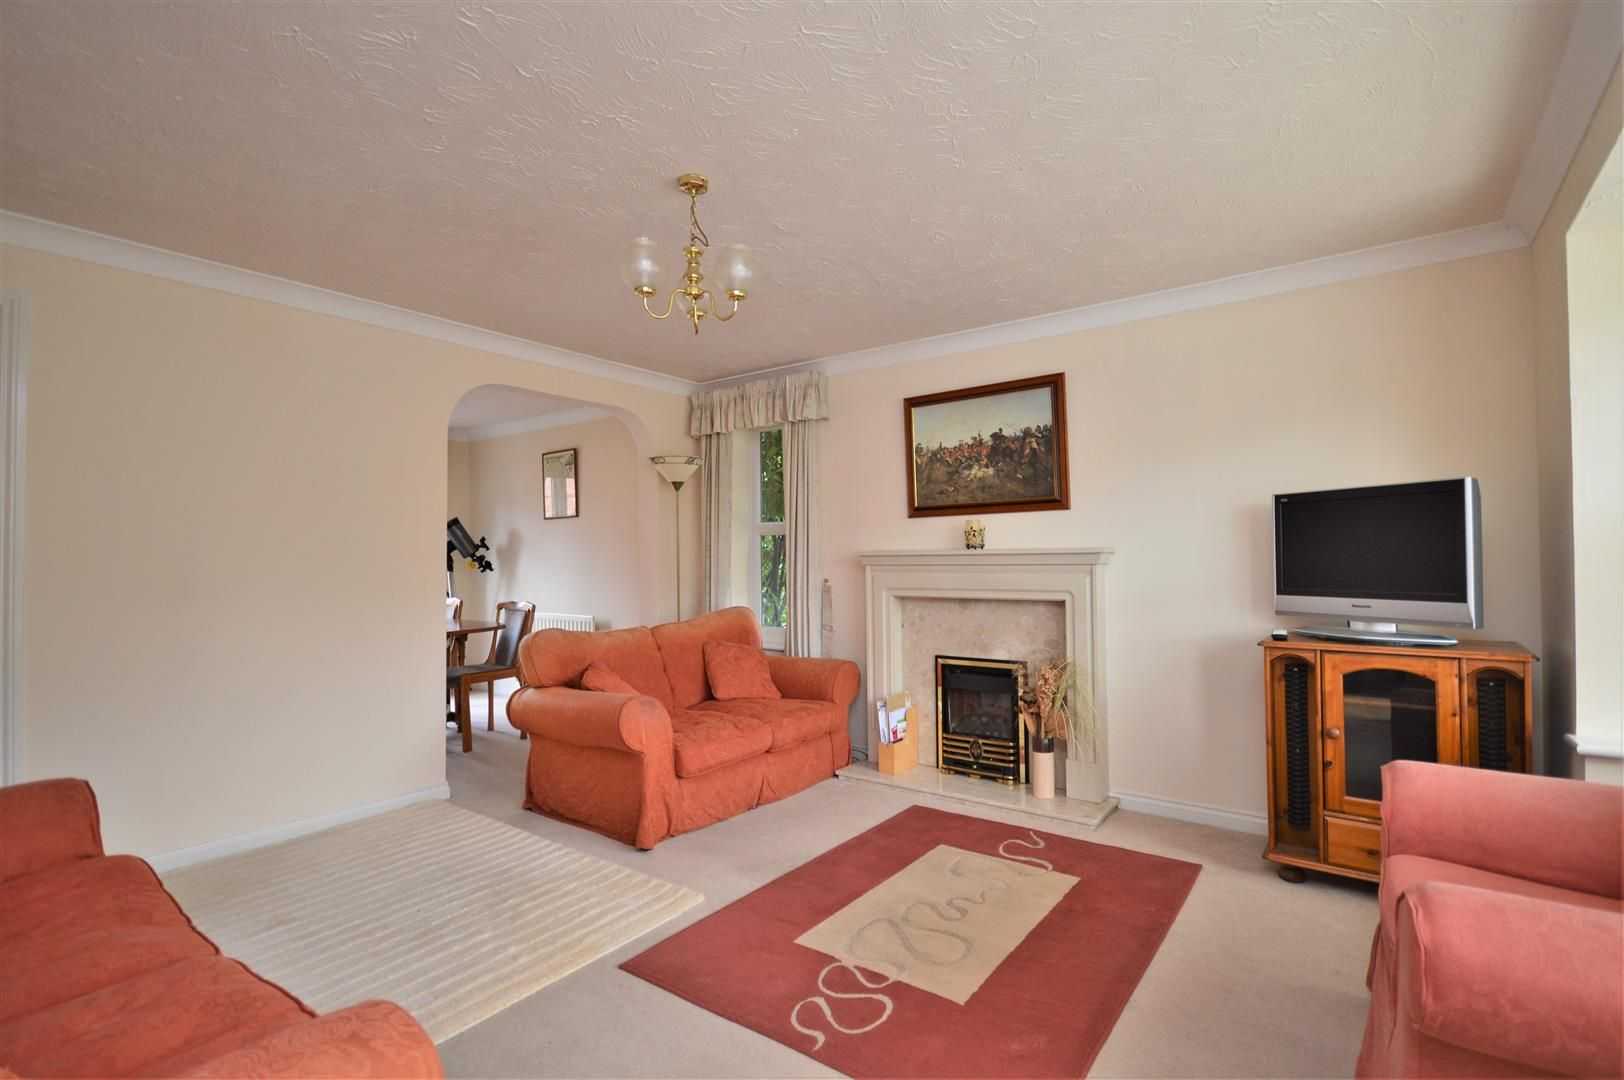 4 bed detached for sale in Belmont 2